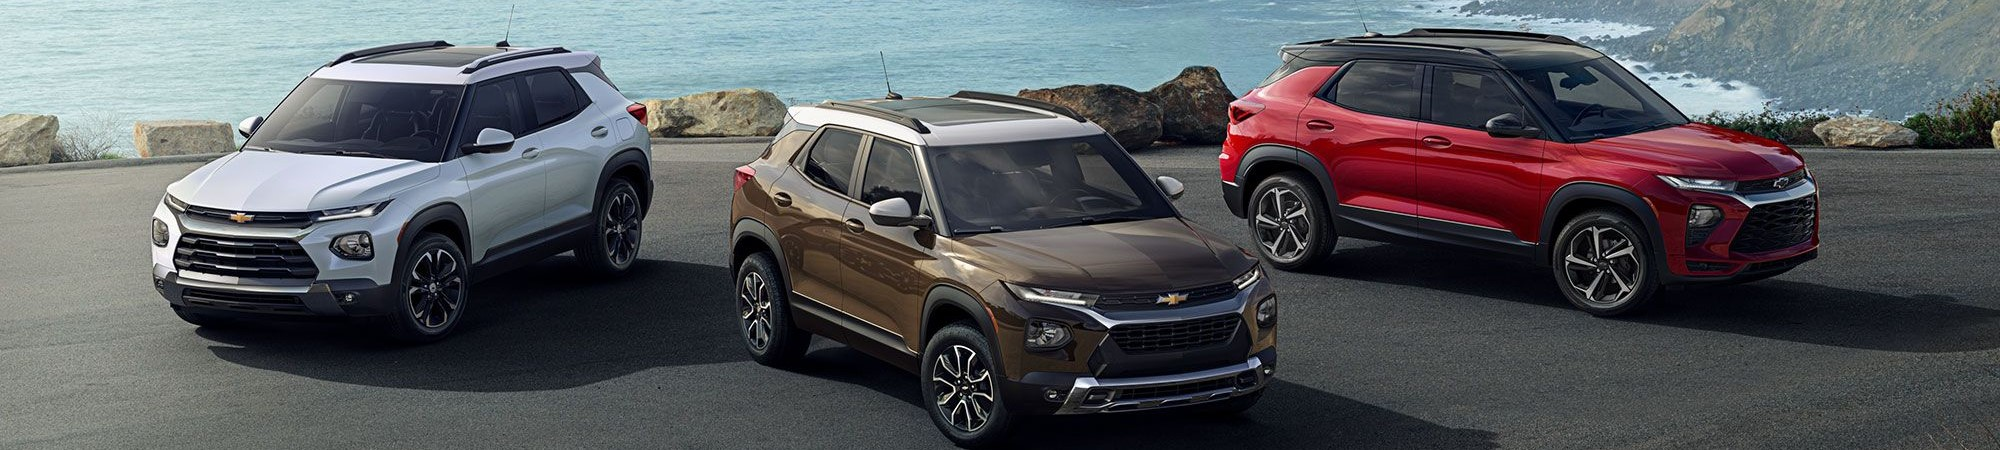 How much can the 2021 Chevrolet Trailblazer tow?